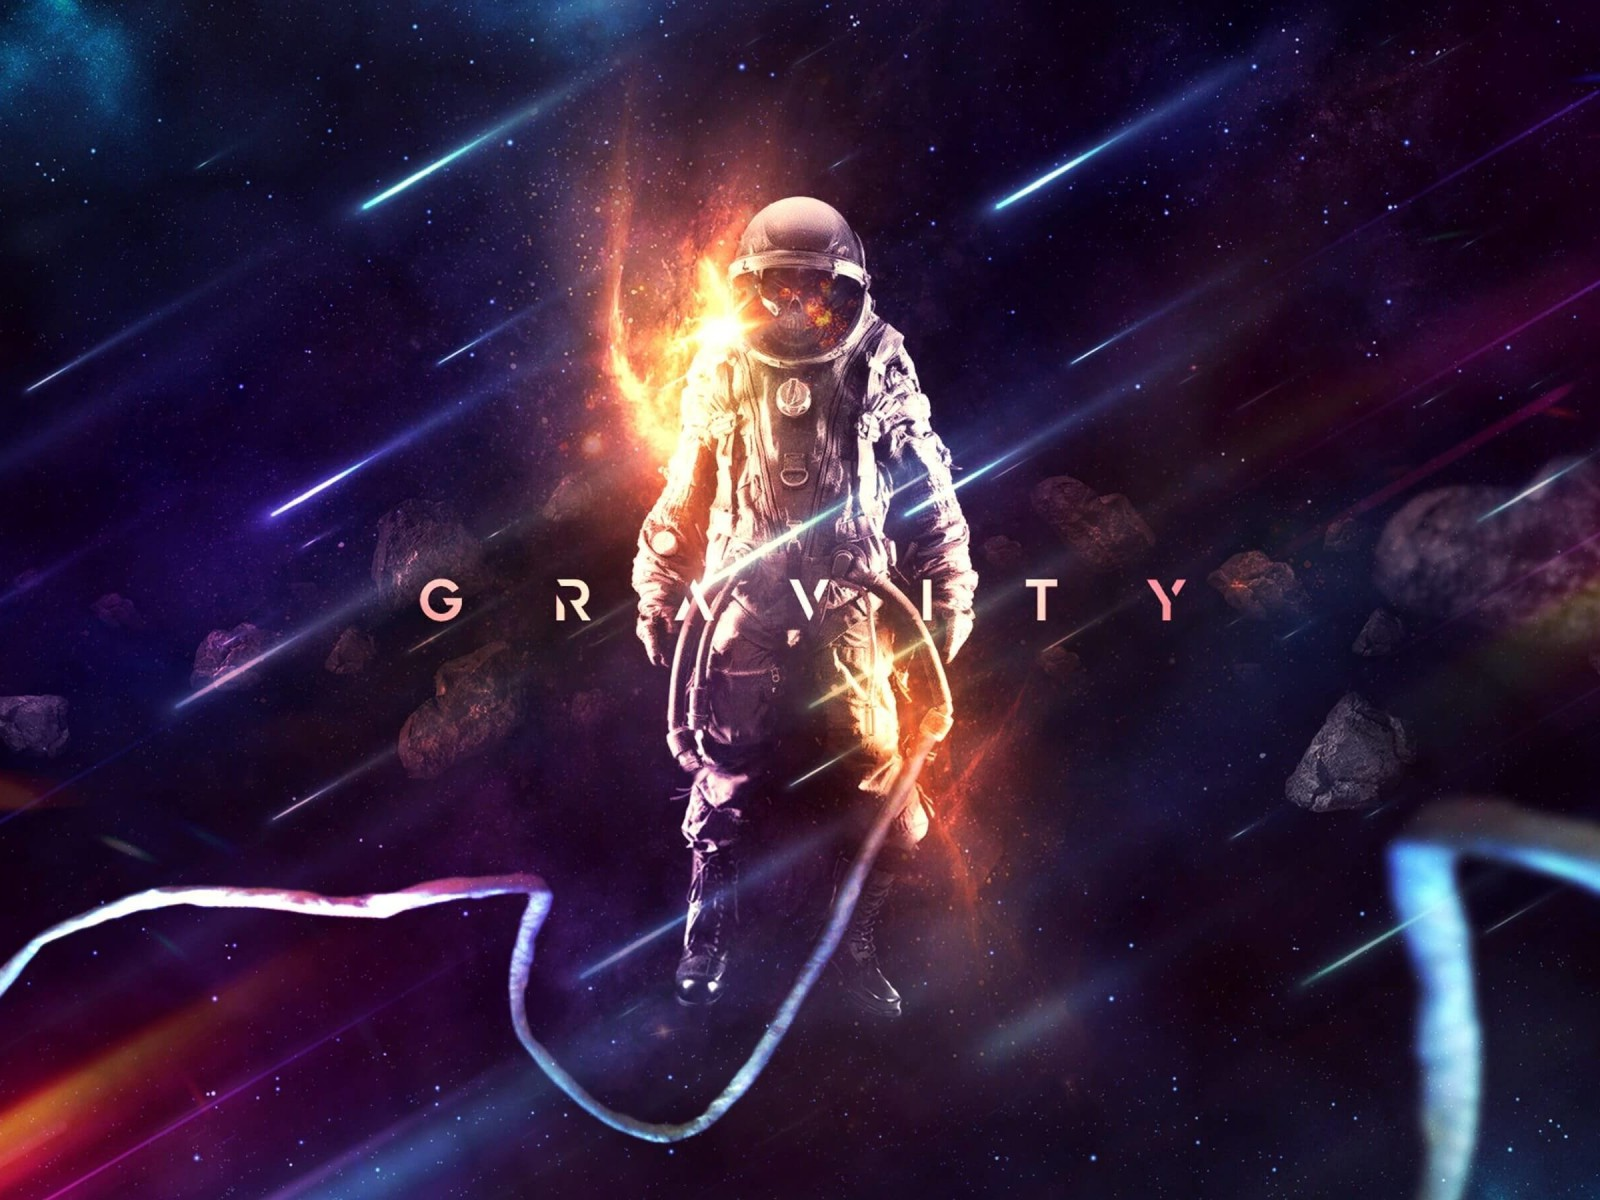 G R A V I T Y Wallpaper for Desktop 1600x1200